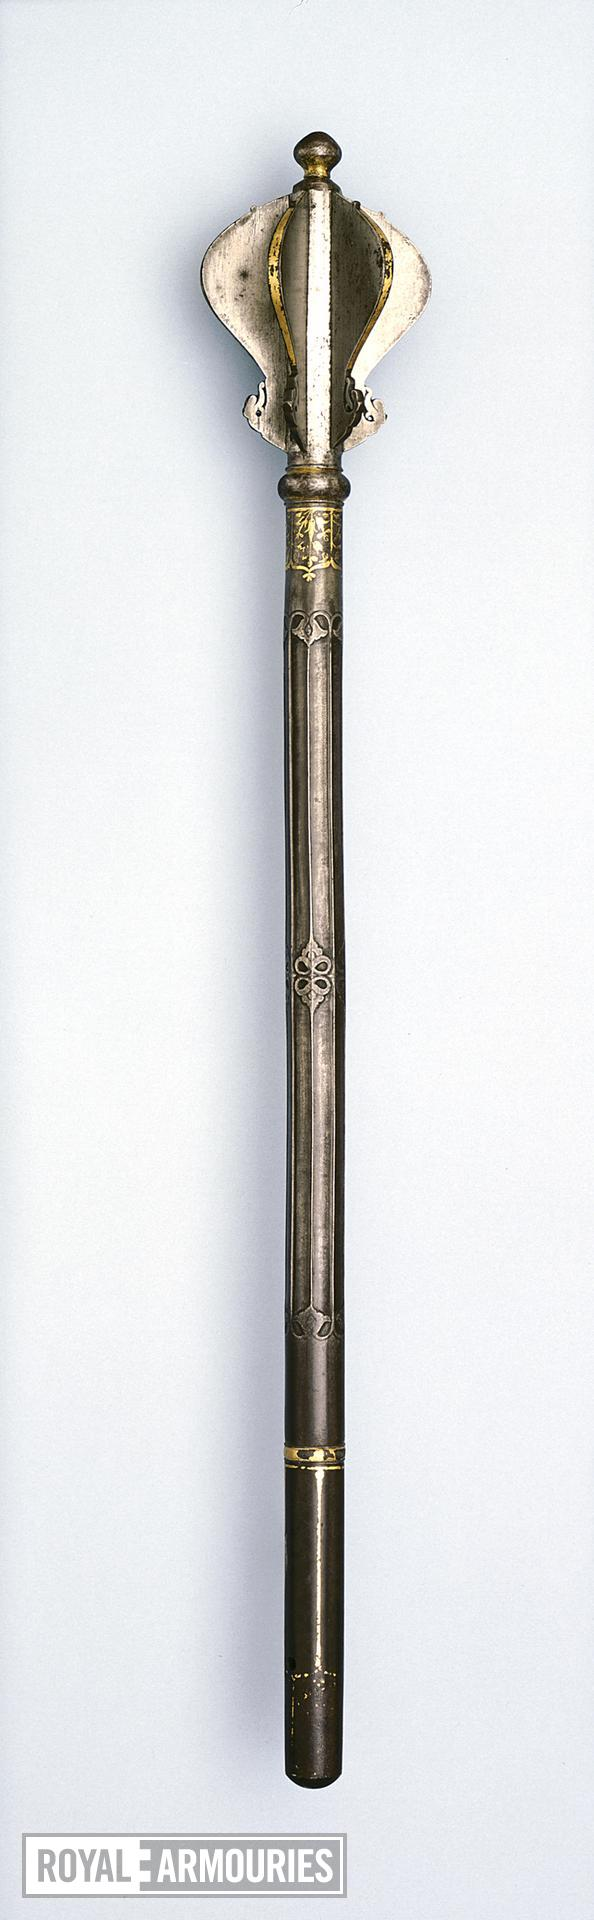 Mace (gorz) with flanged head.